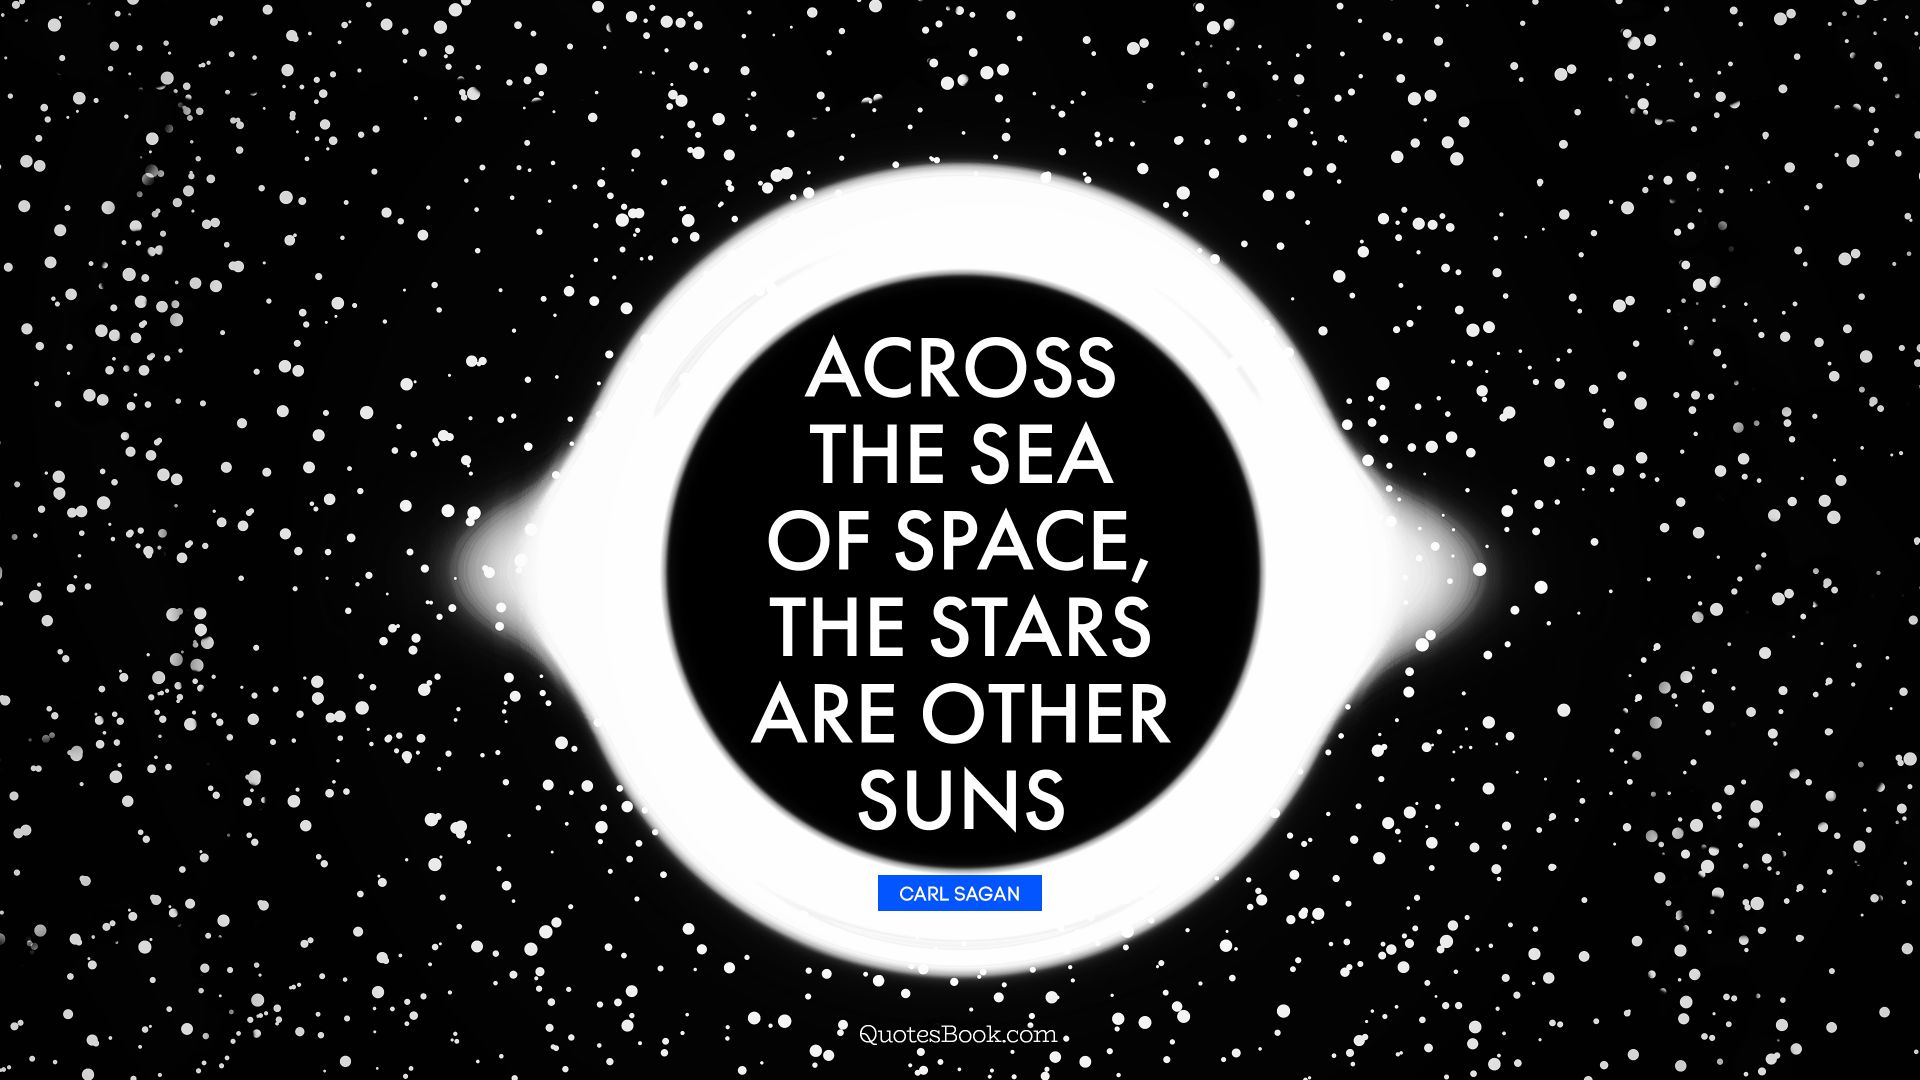 Across the sea of space, the stars are other suns. - Quote by Carl Sagan